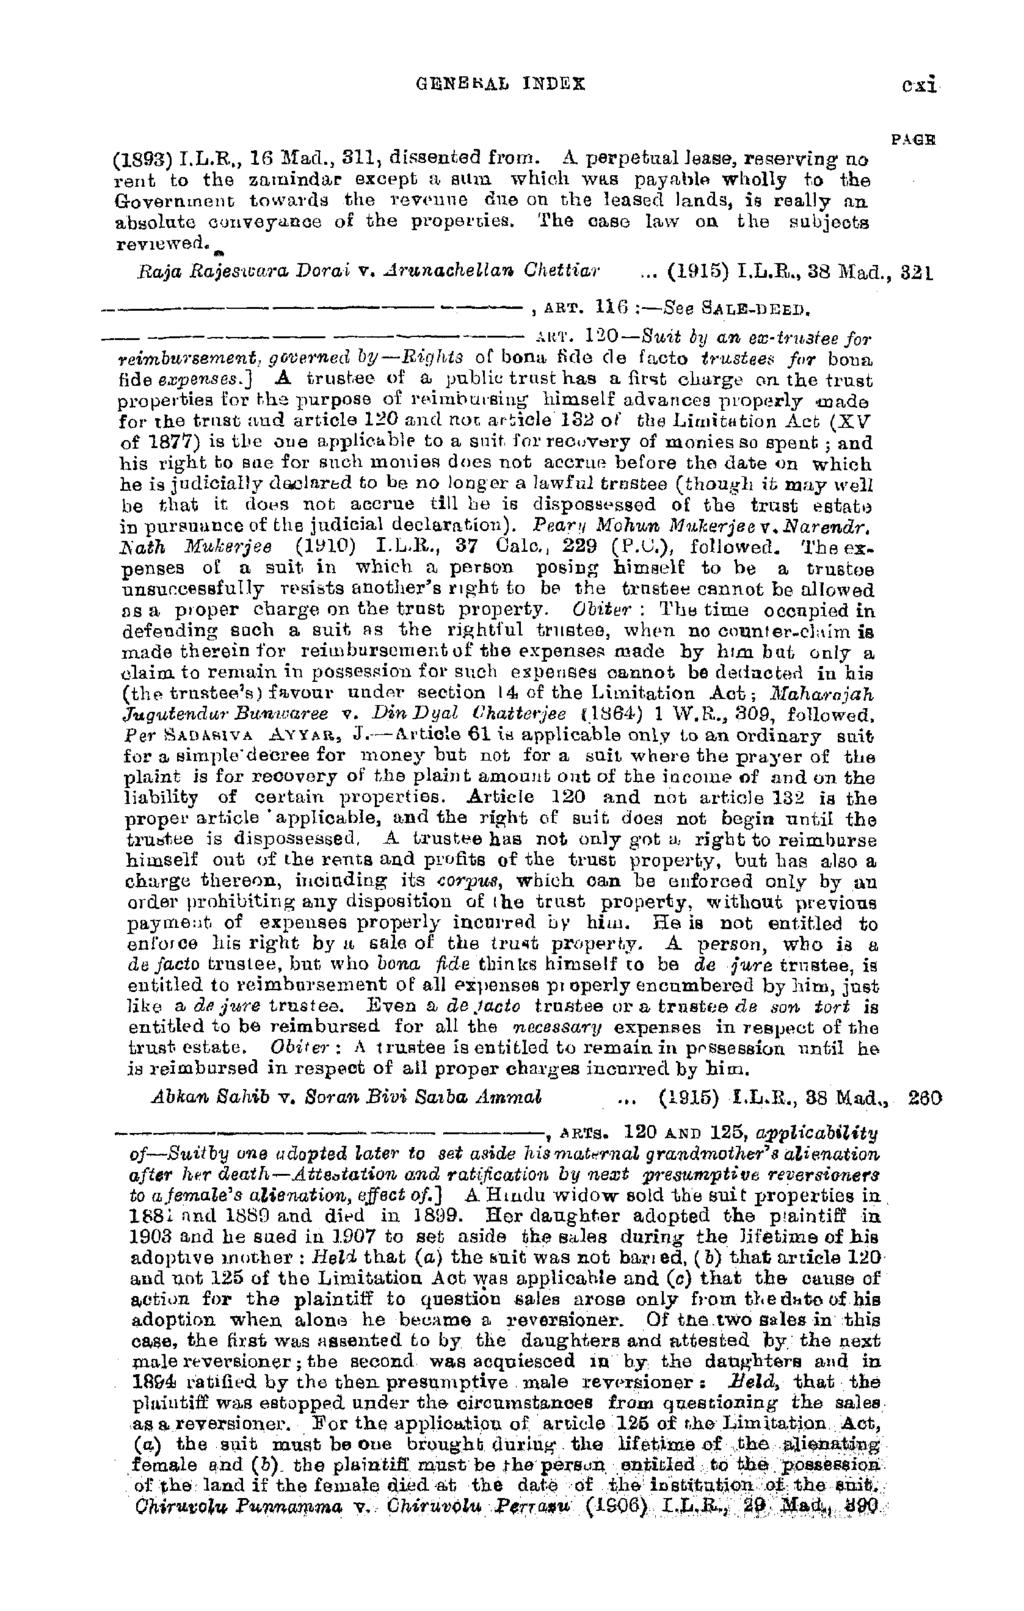 genbkal in dex c-xi (1893) I.L.R., 10 Mad., 311, dissented from.